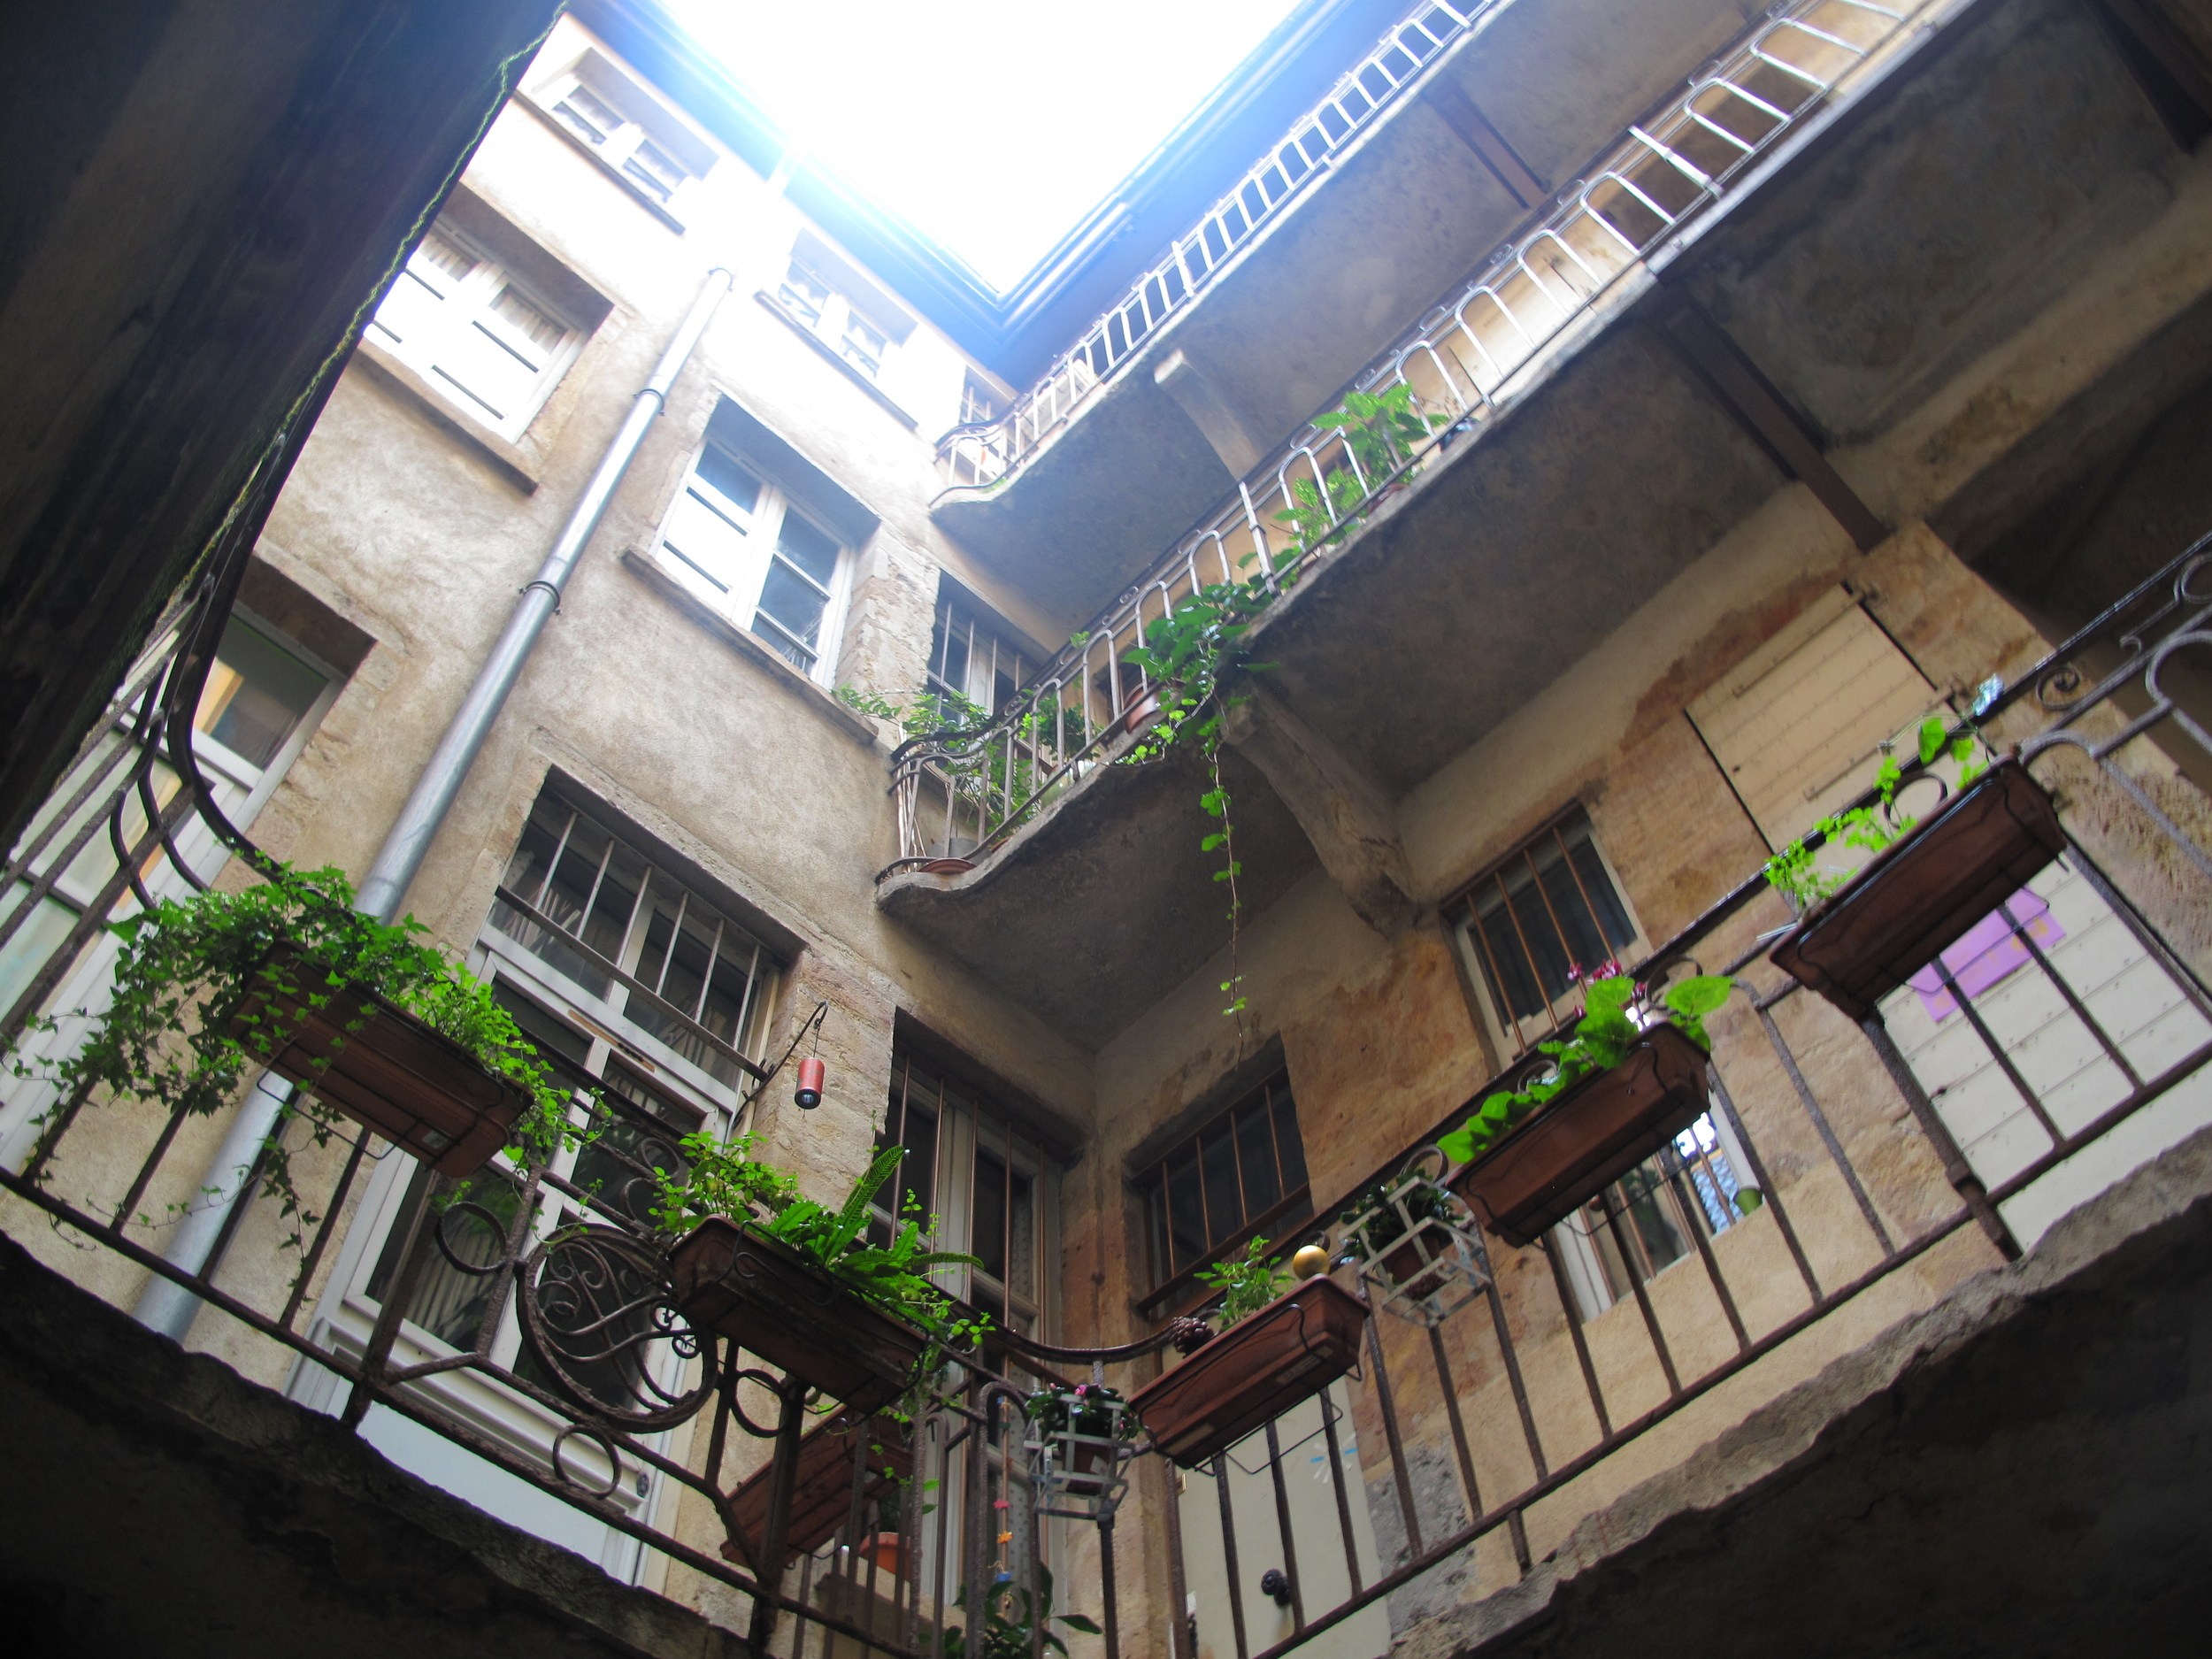 A courtyard in the Traboules of Lyon, with small potted plants and ivy